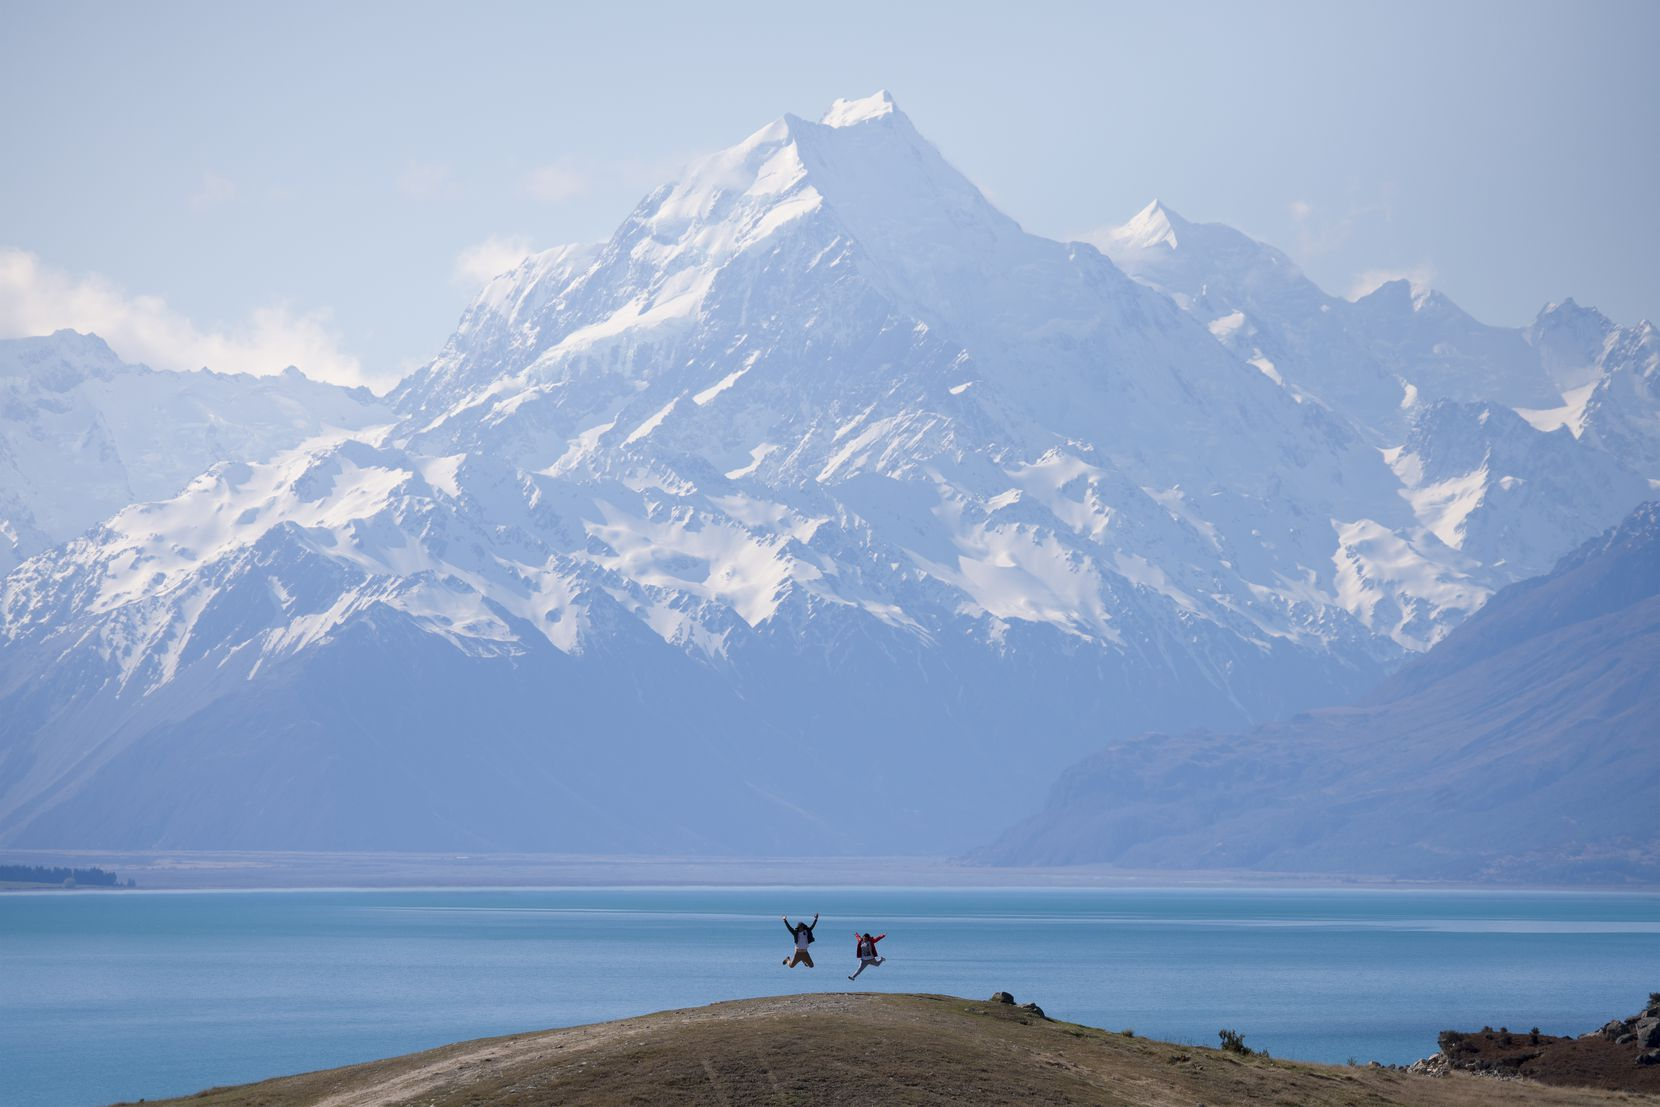 Mount Cook towers above the surrounding landscape and Lake Pukaki. At 12,218 feet, Mount Cook is the highest mountain in New Zealand.